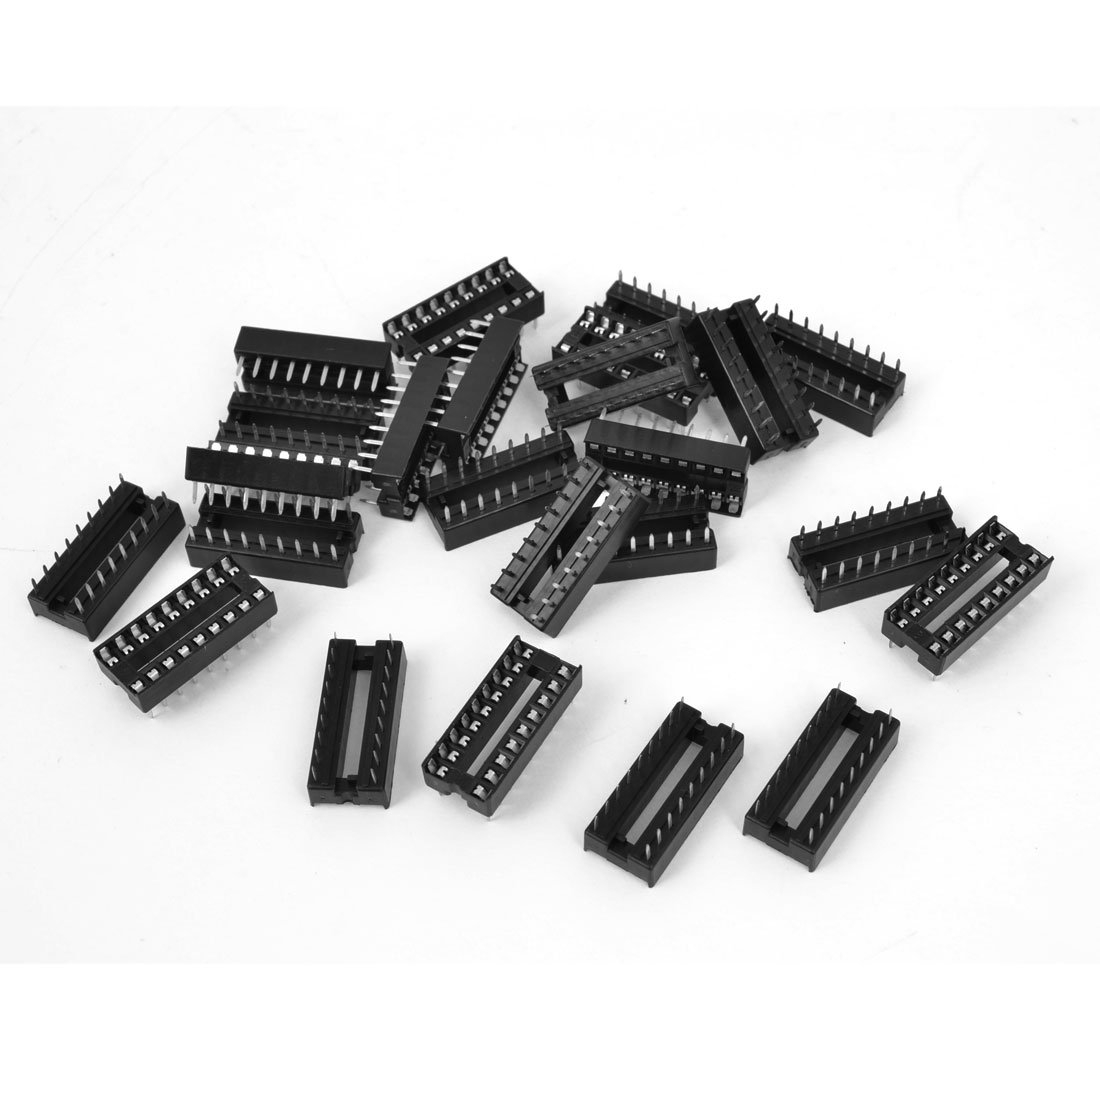 25 Pcs 2.54mm PCB Board 2 Row 18-Pin DIP Solder Type IC Socket Adapter